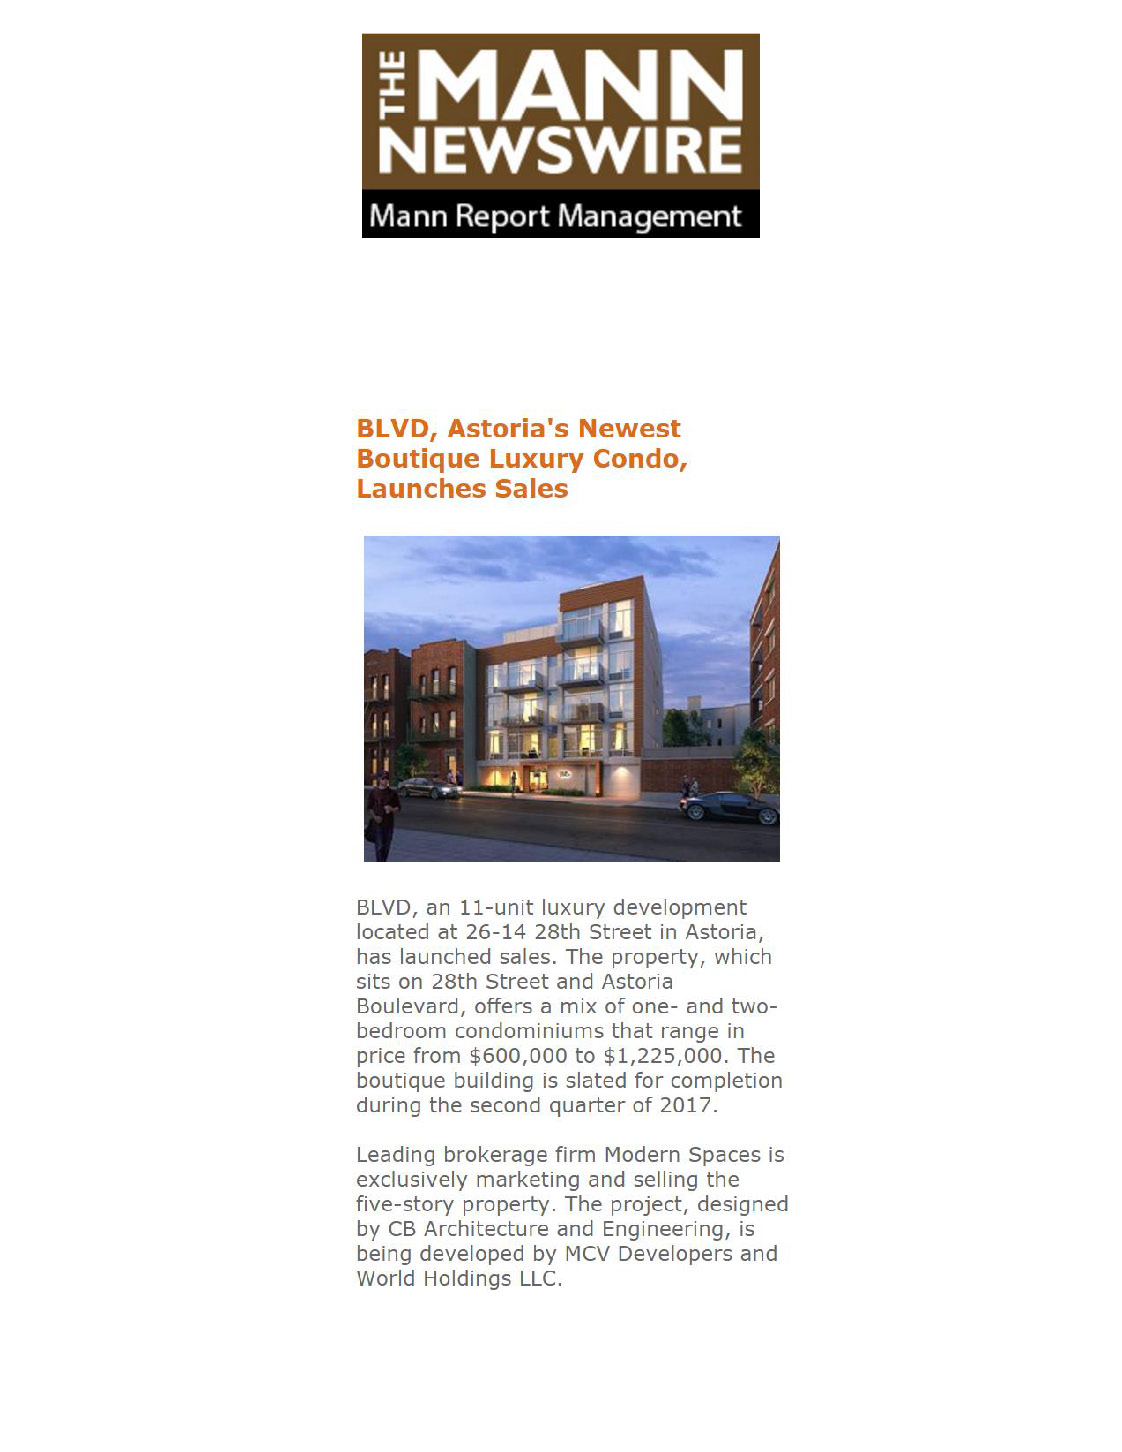 mann-report-newswire-blvd-astorias-newest-boutique-luxury-condo-launches-sales-11-29-2016_page_1